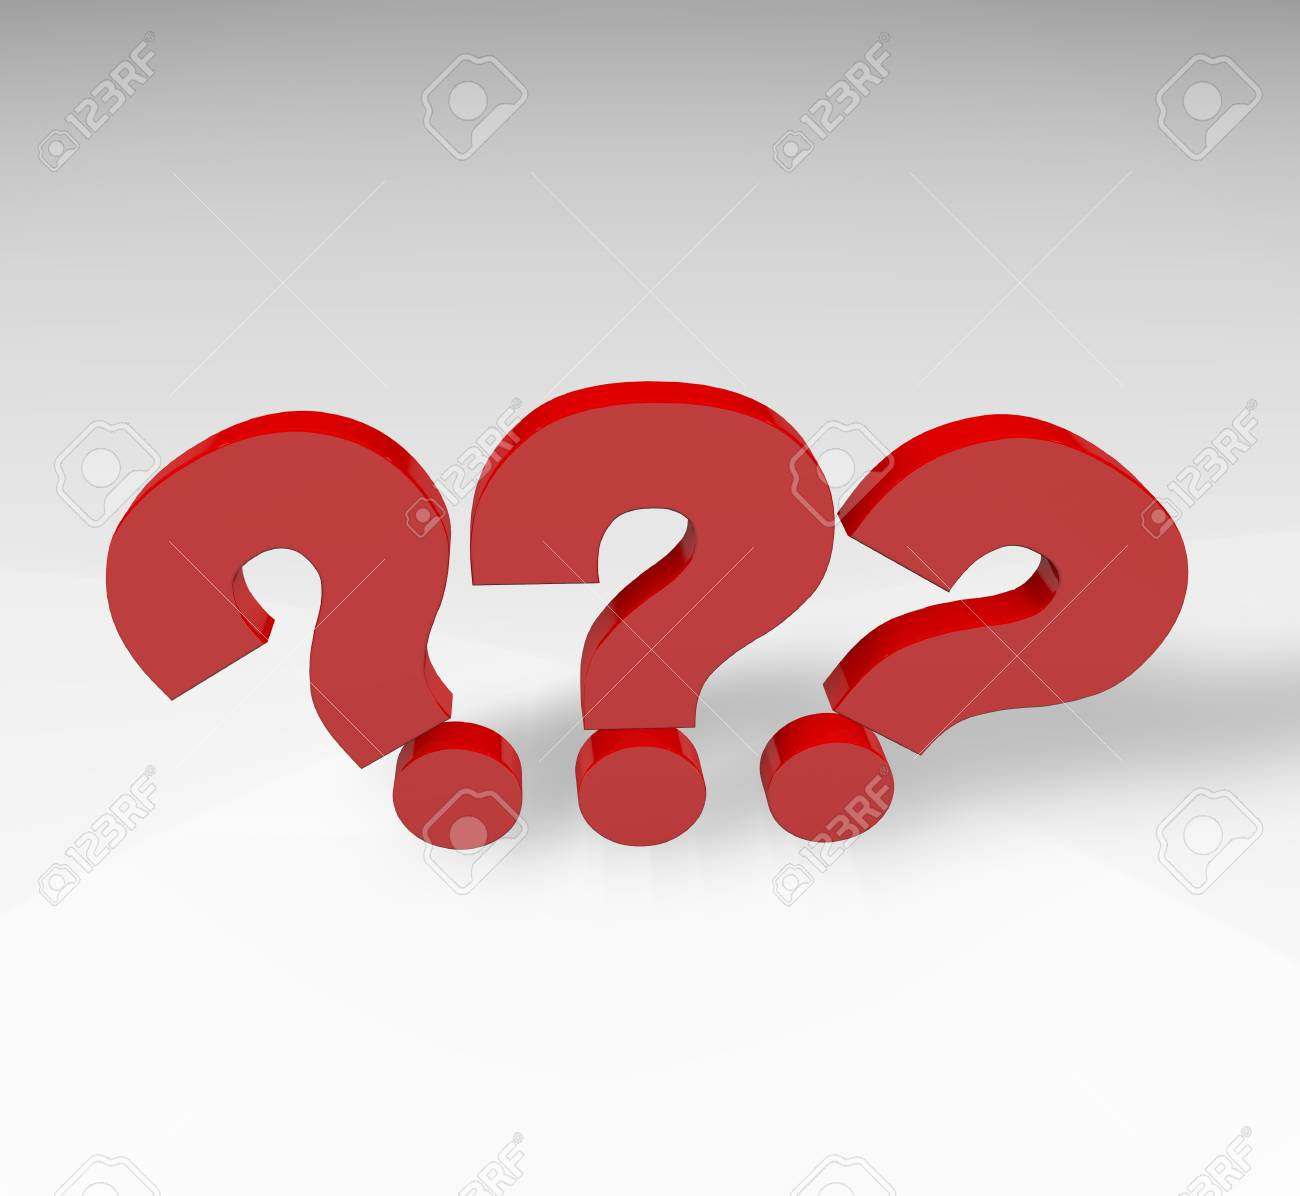 Red question mark isolated over white background with reflection and shadow - 66024505